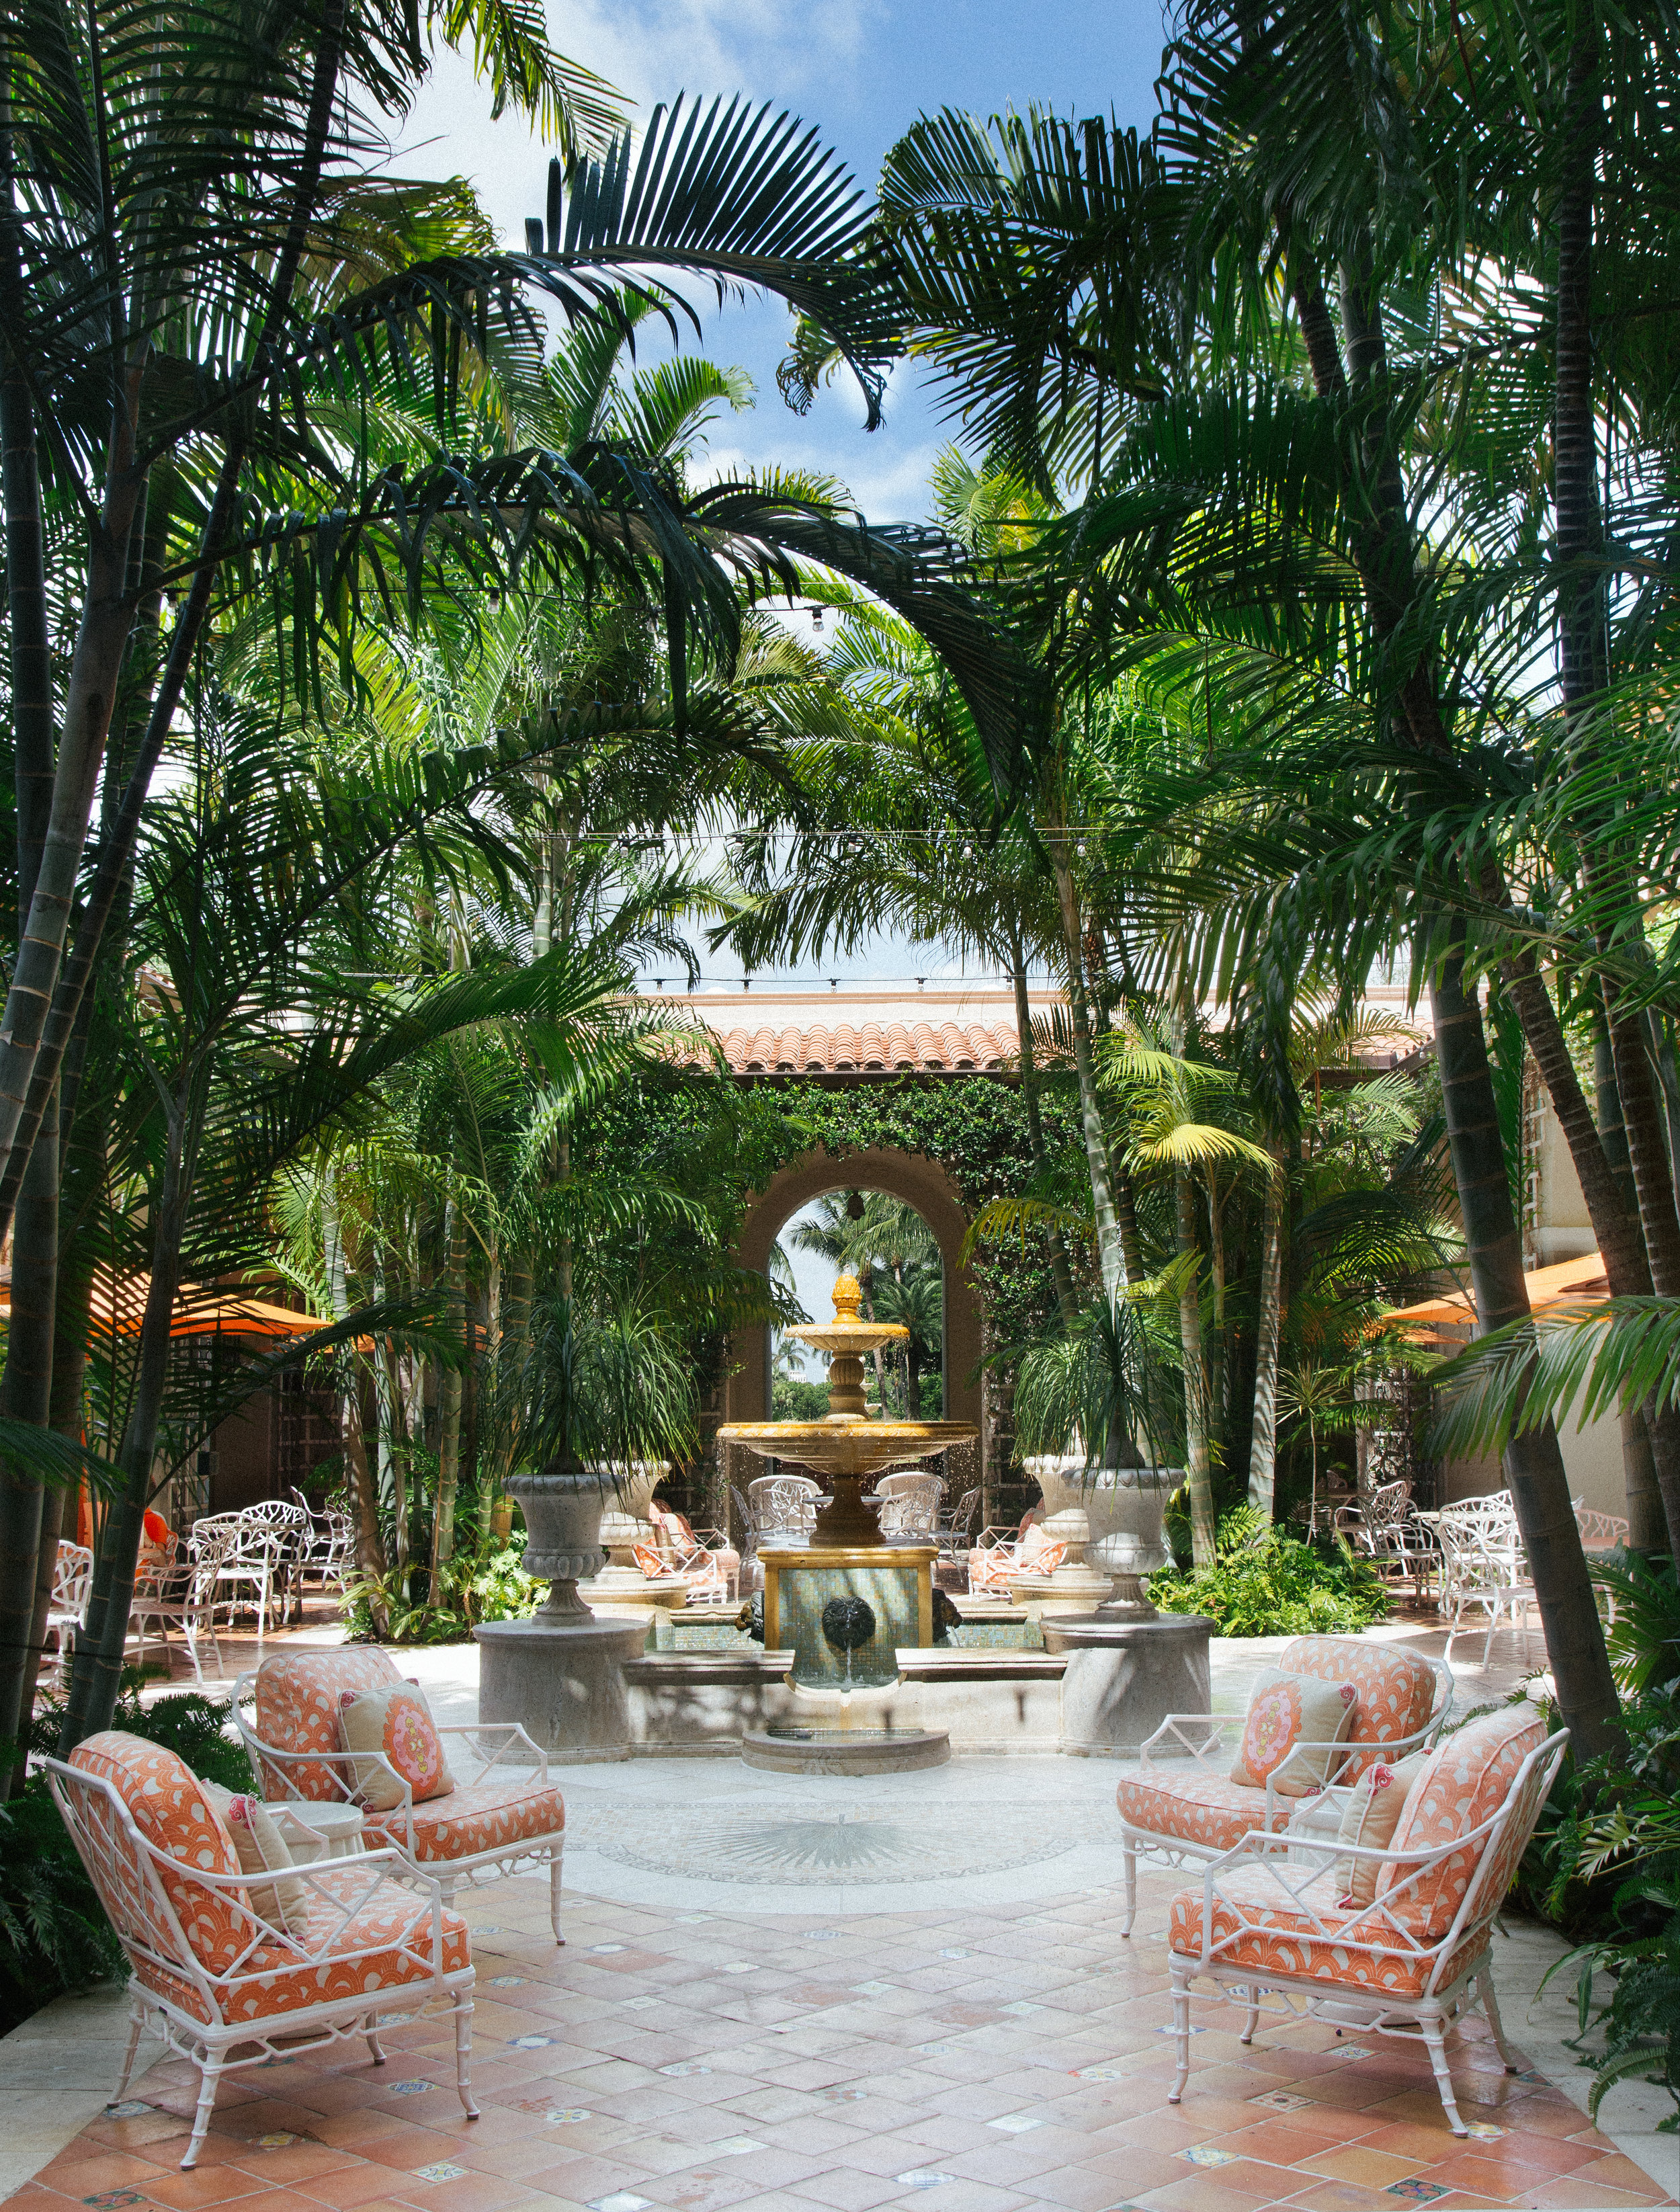 The picturesque Palm Courtyard surrounds The Breakers' shops, offering guests a cozy spot to relax